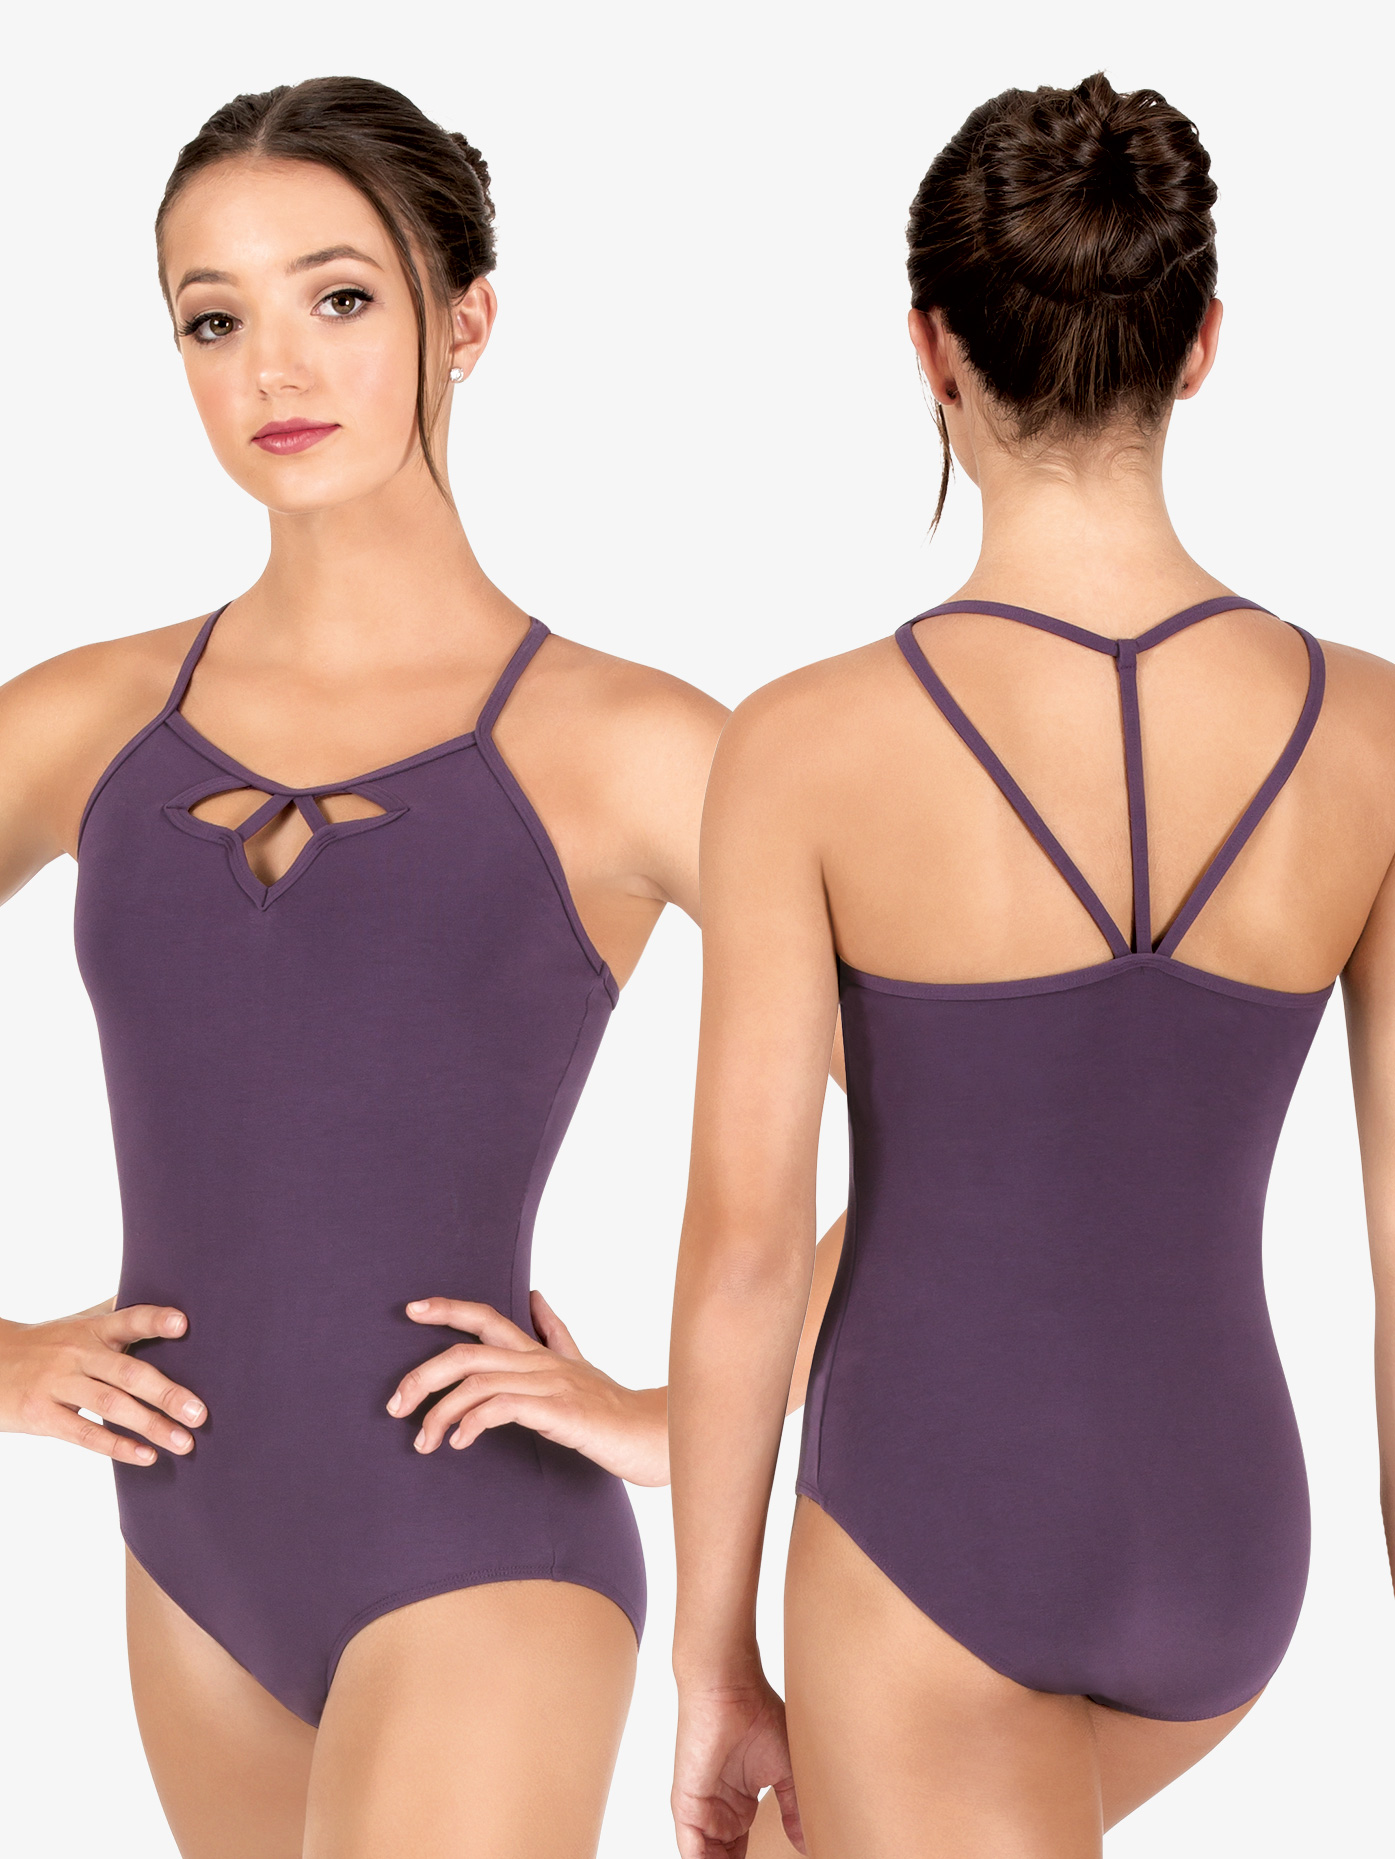 74a663f684b22e Studio Collection Womens Front Cutout Cotton Camisole Leotard - Style No  N9019x. Loading zoom